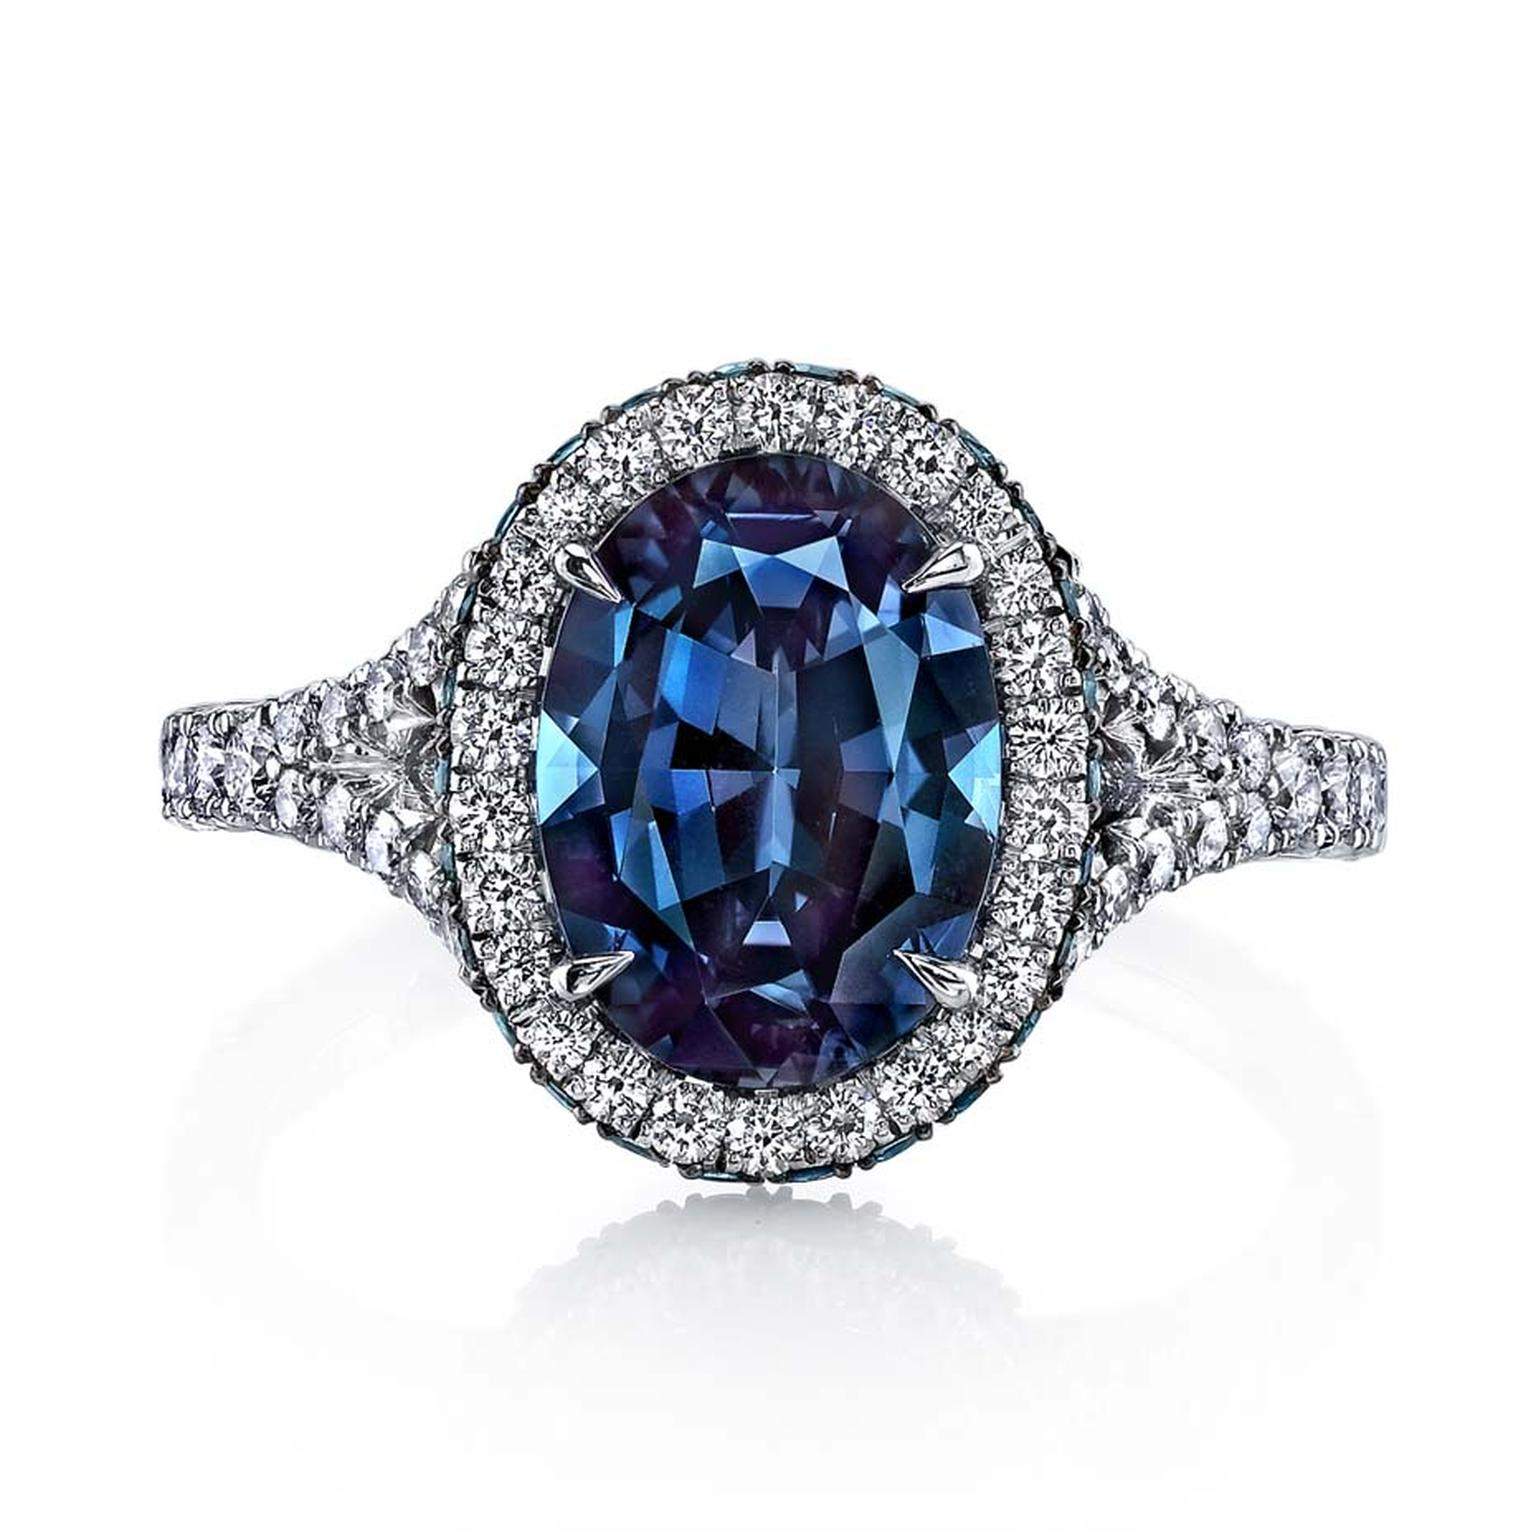 Omi Privé one-of-a-kind alexandrite and diamond ring